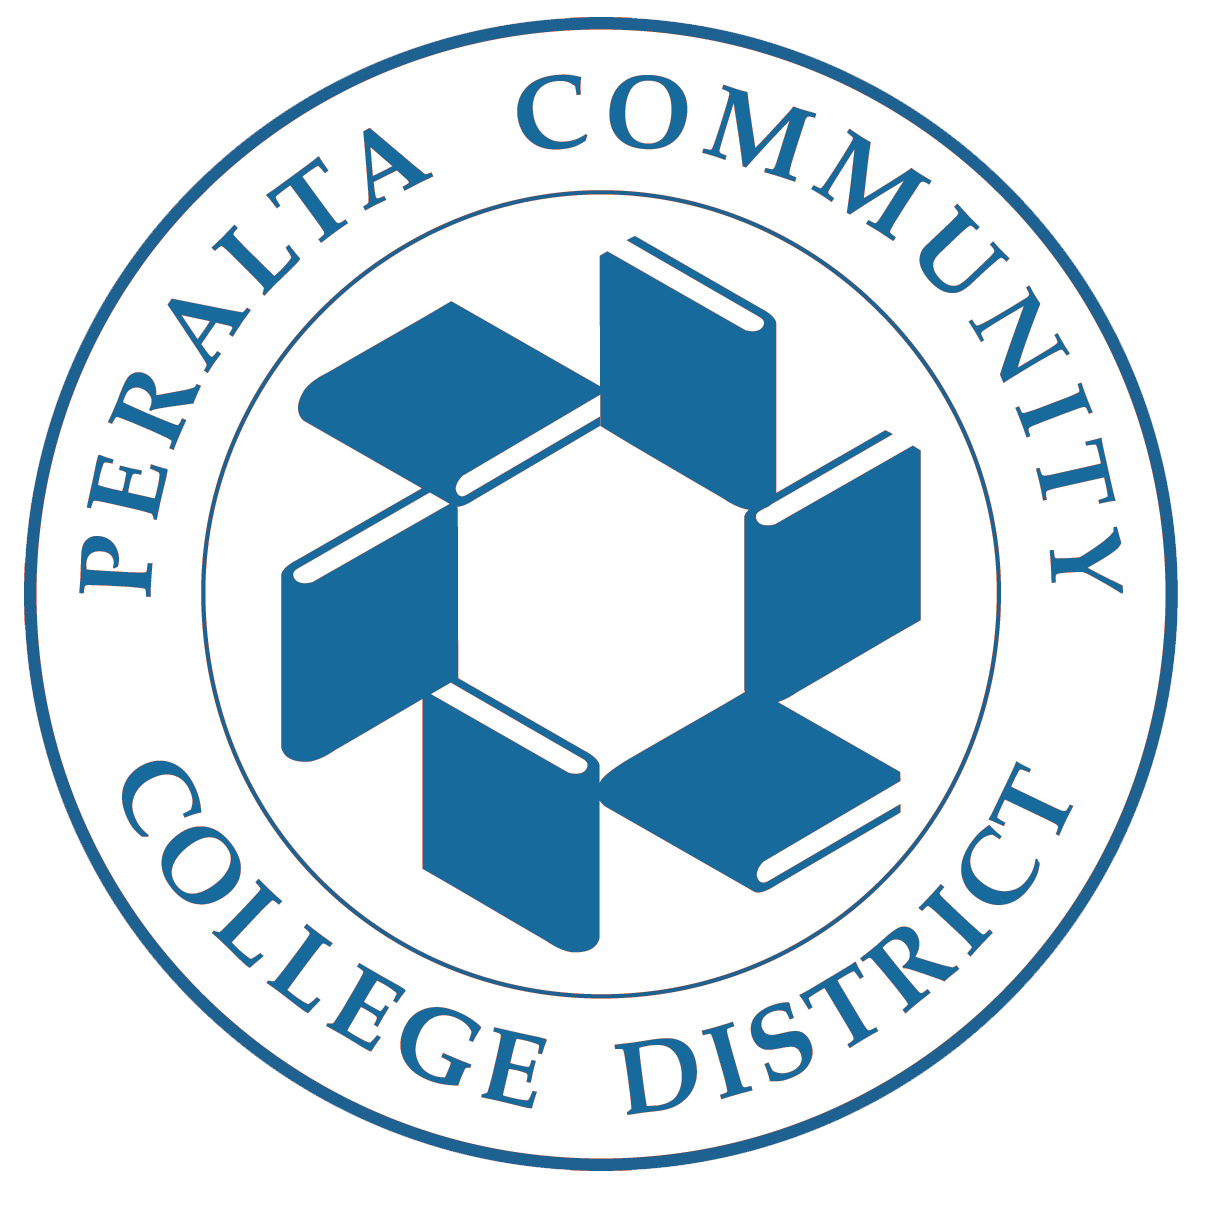 Peralta Community College District Valentine Corp Construction San Rafael CA.png